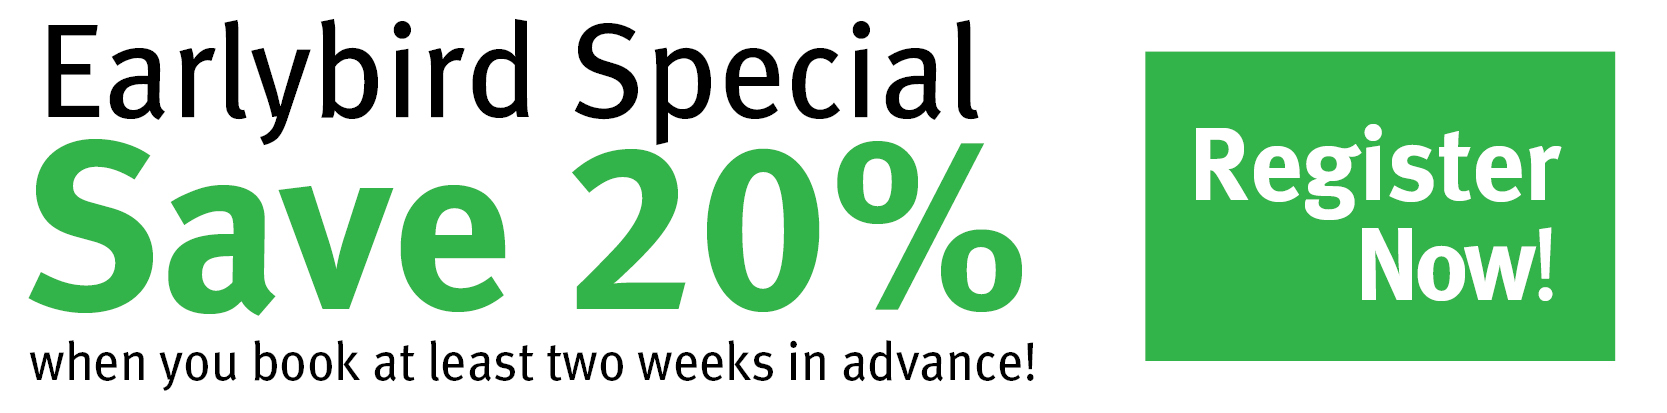 Earlybird Special: Save 20%25